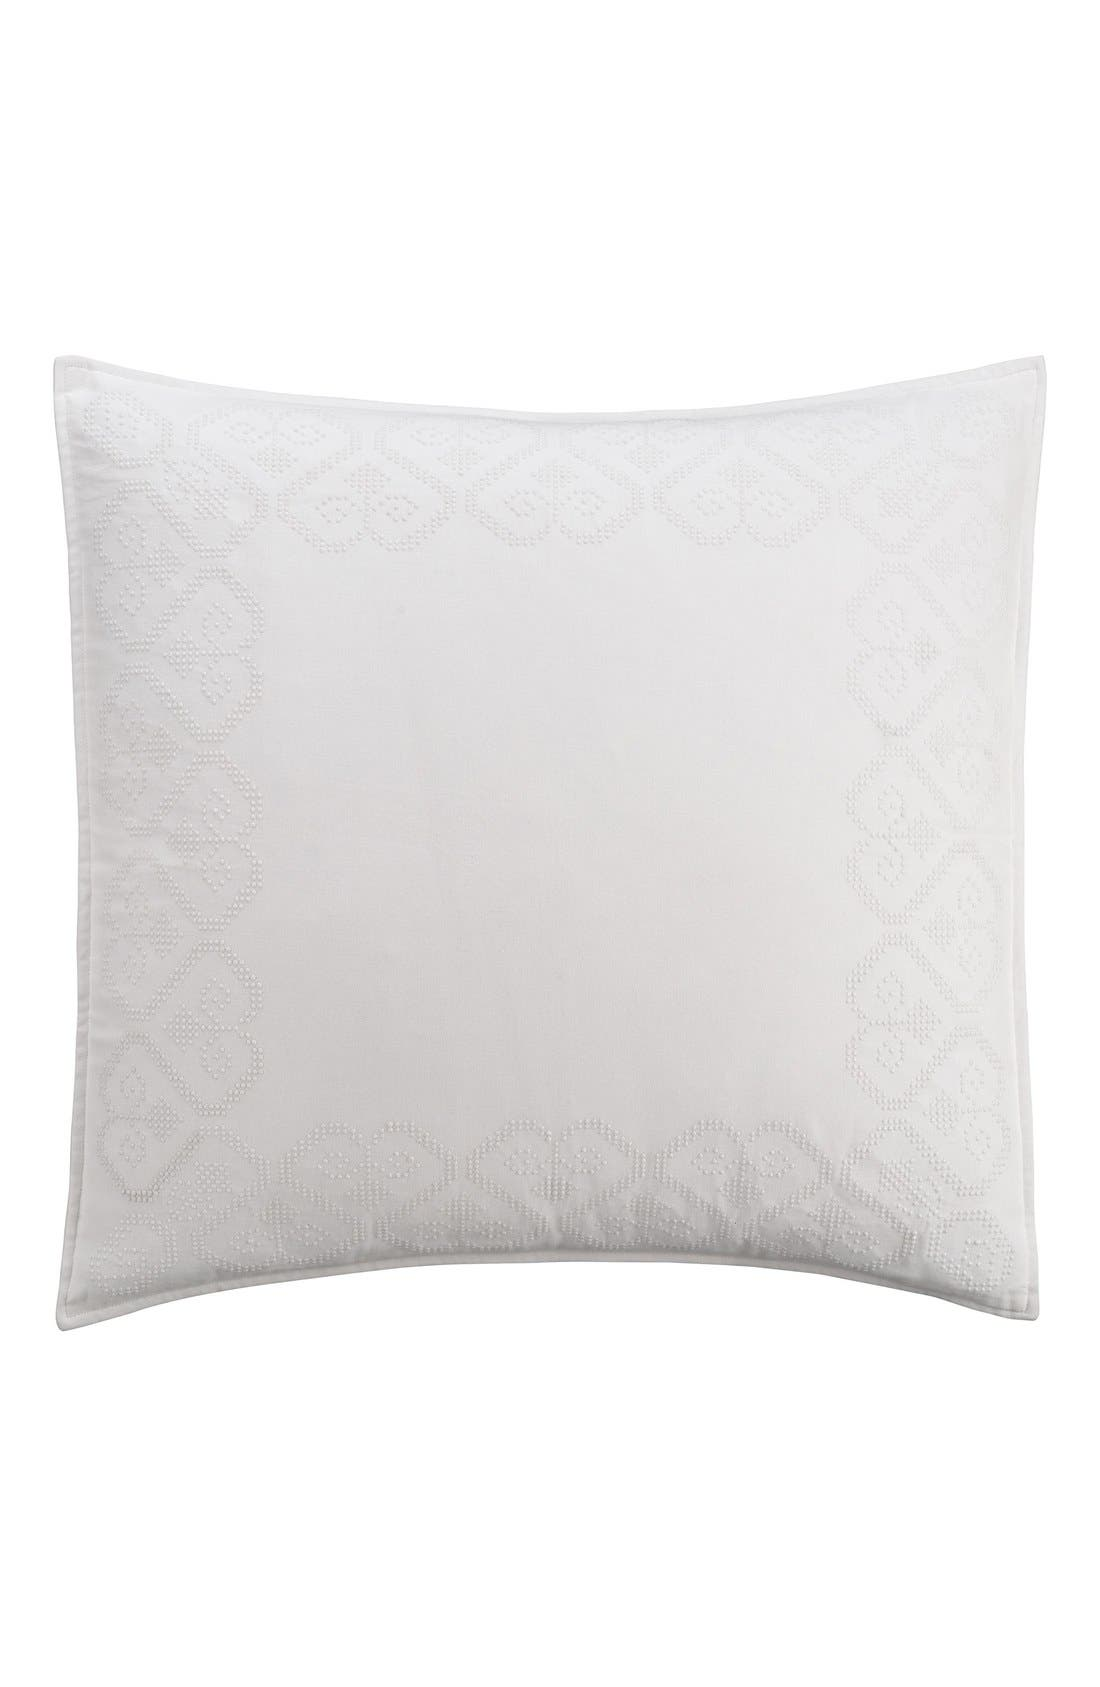 'Lace Medallion' Euro Sham,                             Main thumbnail 1, color,                             White